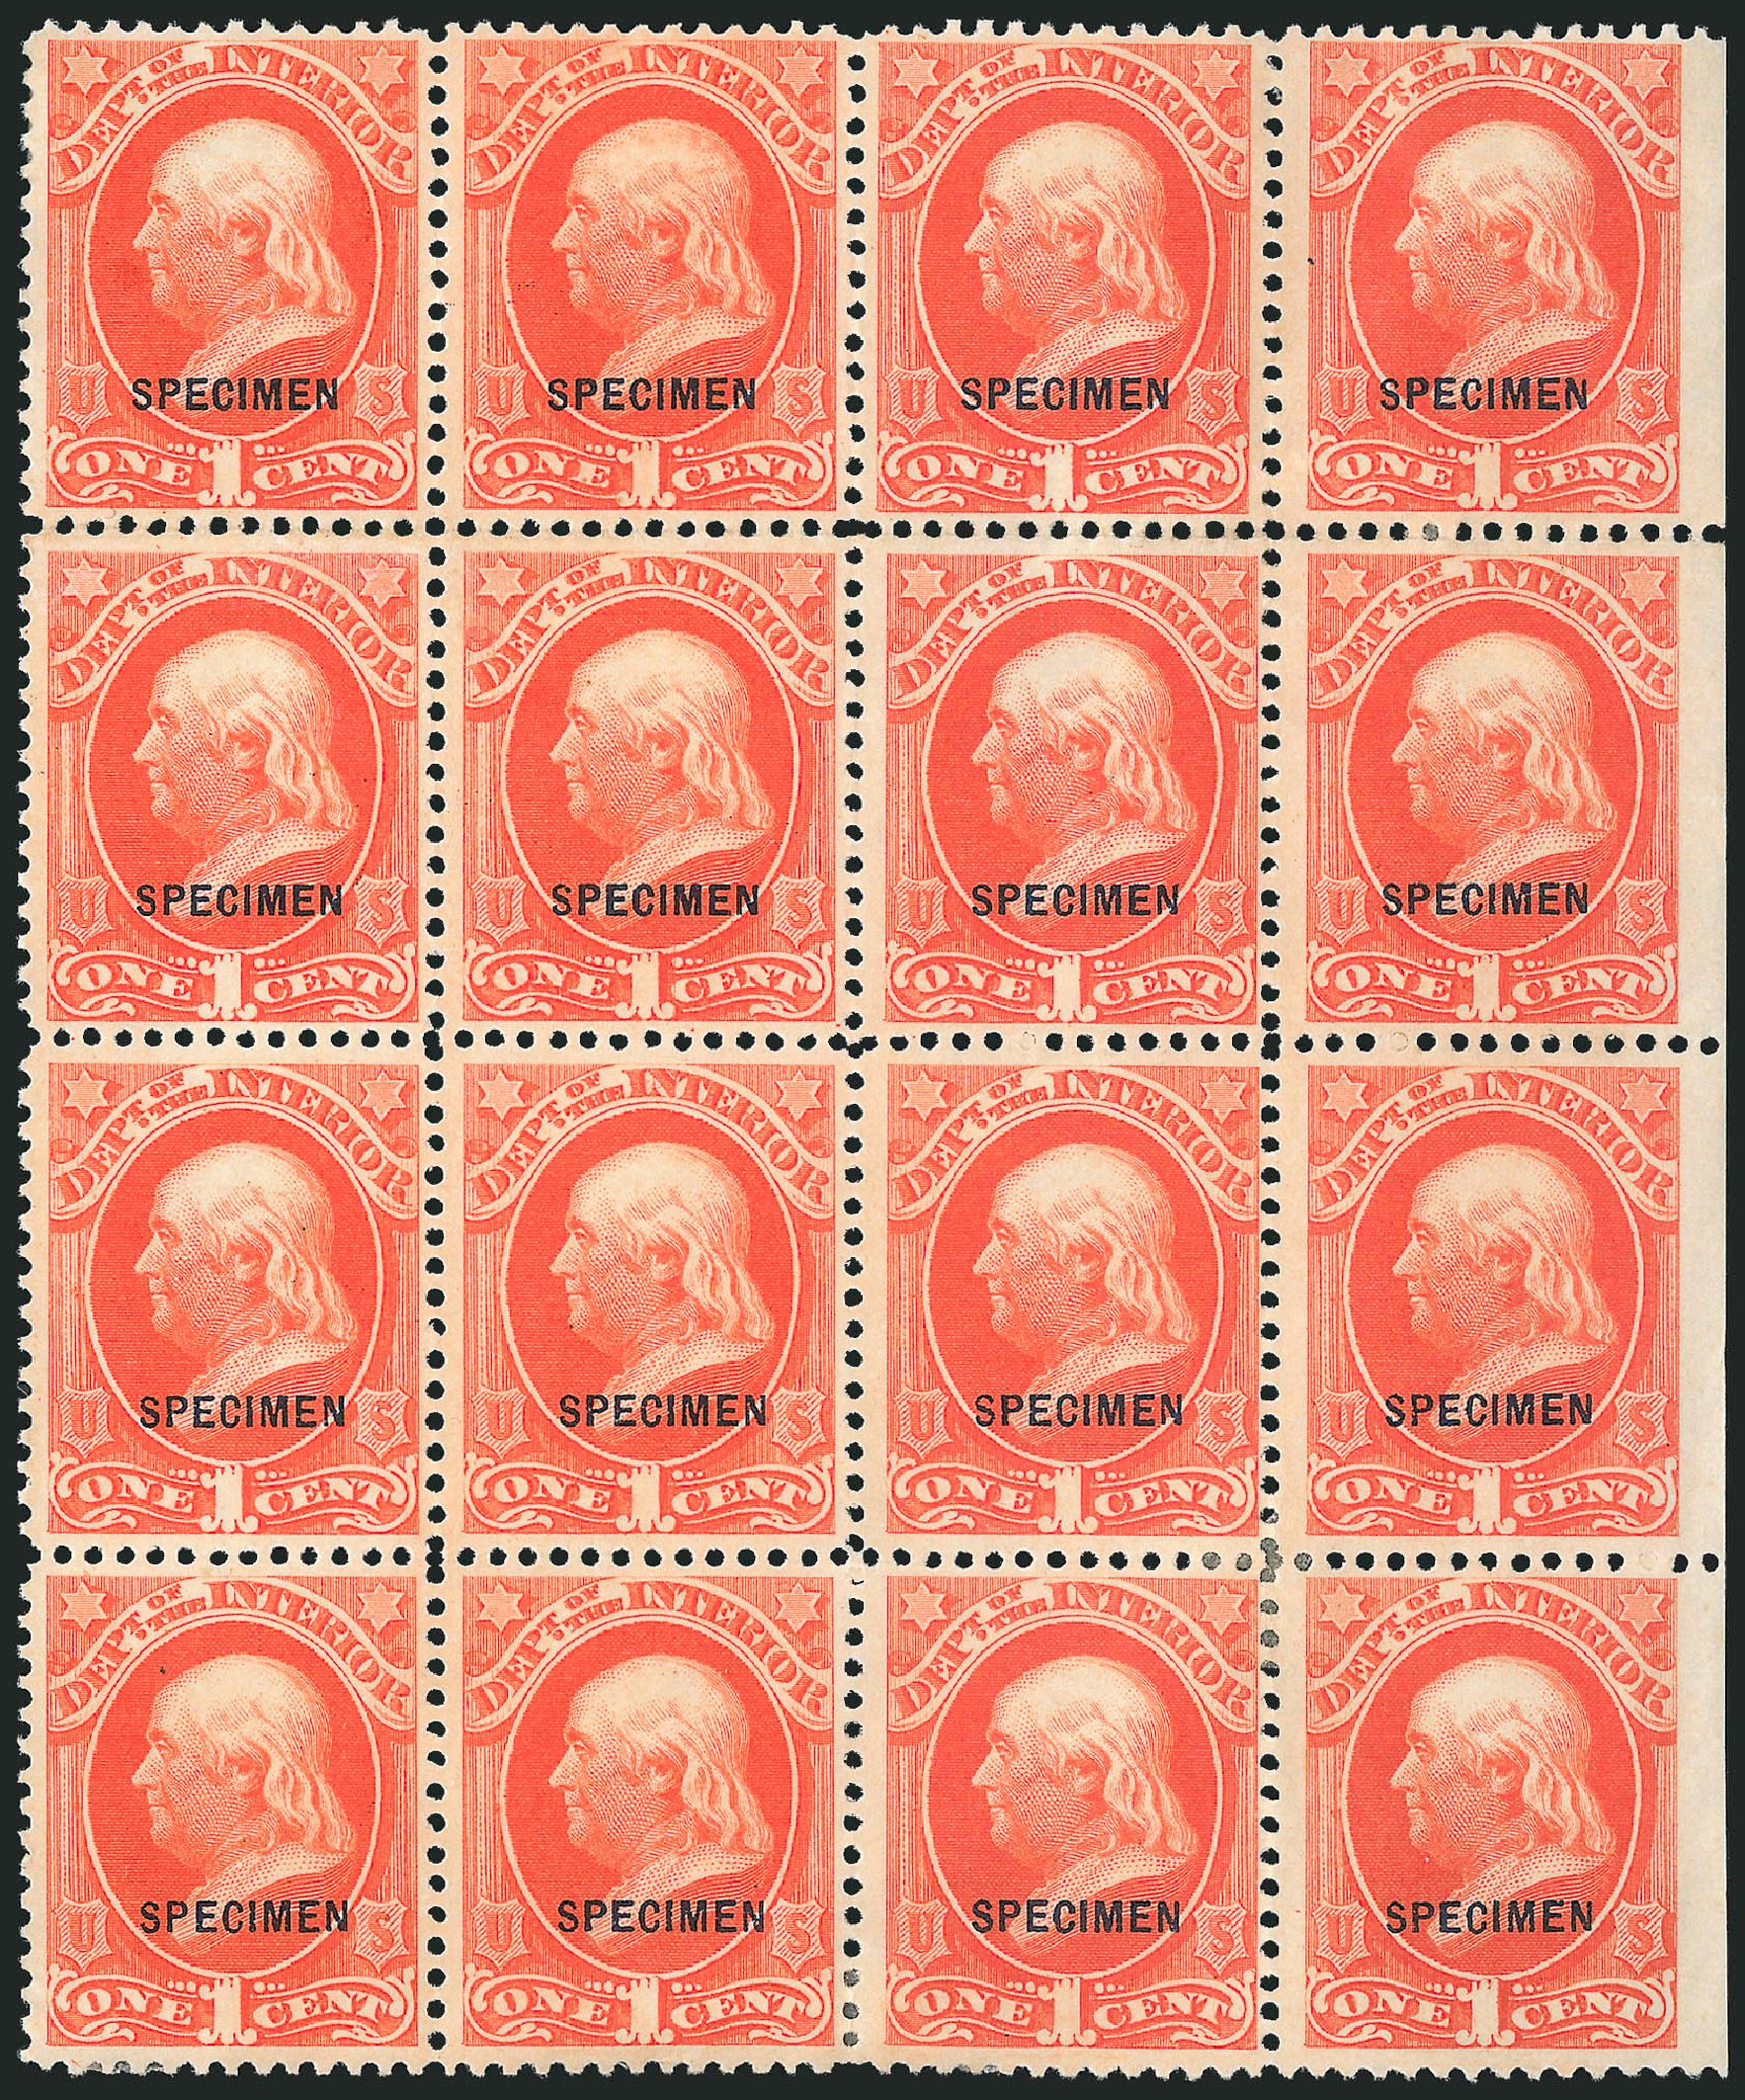 Price of US Stamp Scott O15 - 1c 1873 Interior Official. Robert Siegel Auction Galleries, Mar 2015, Sale 1095, Lot 548